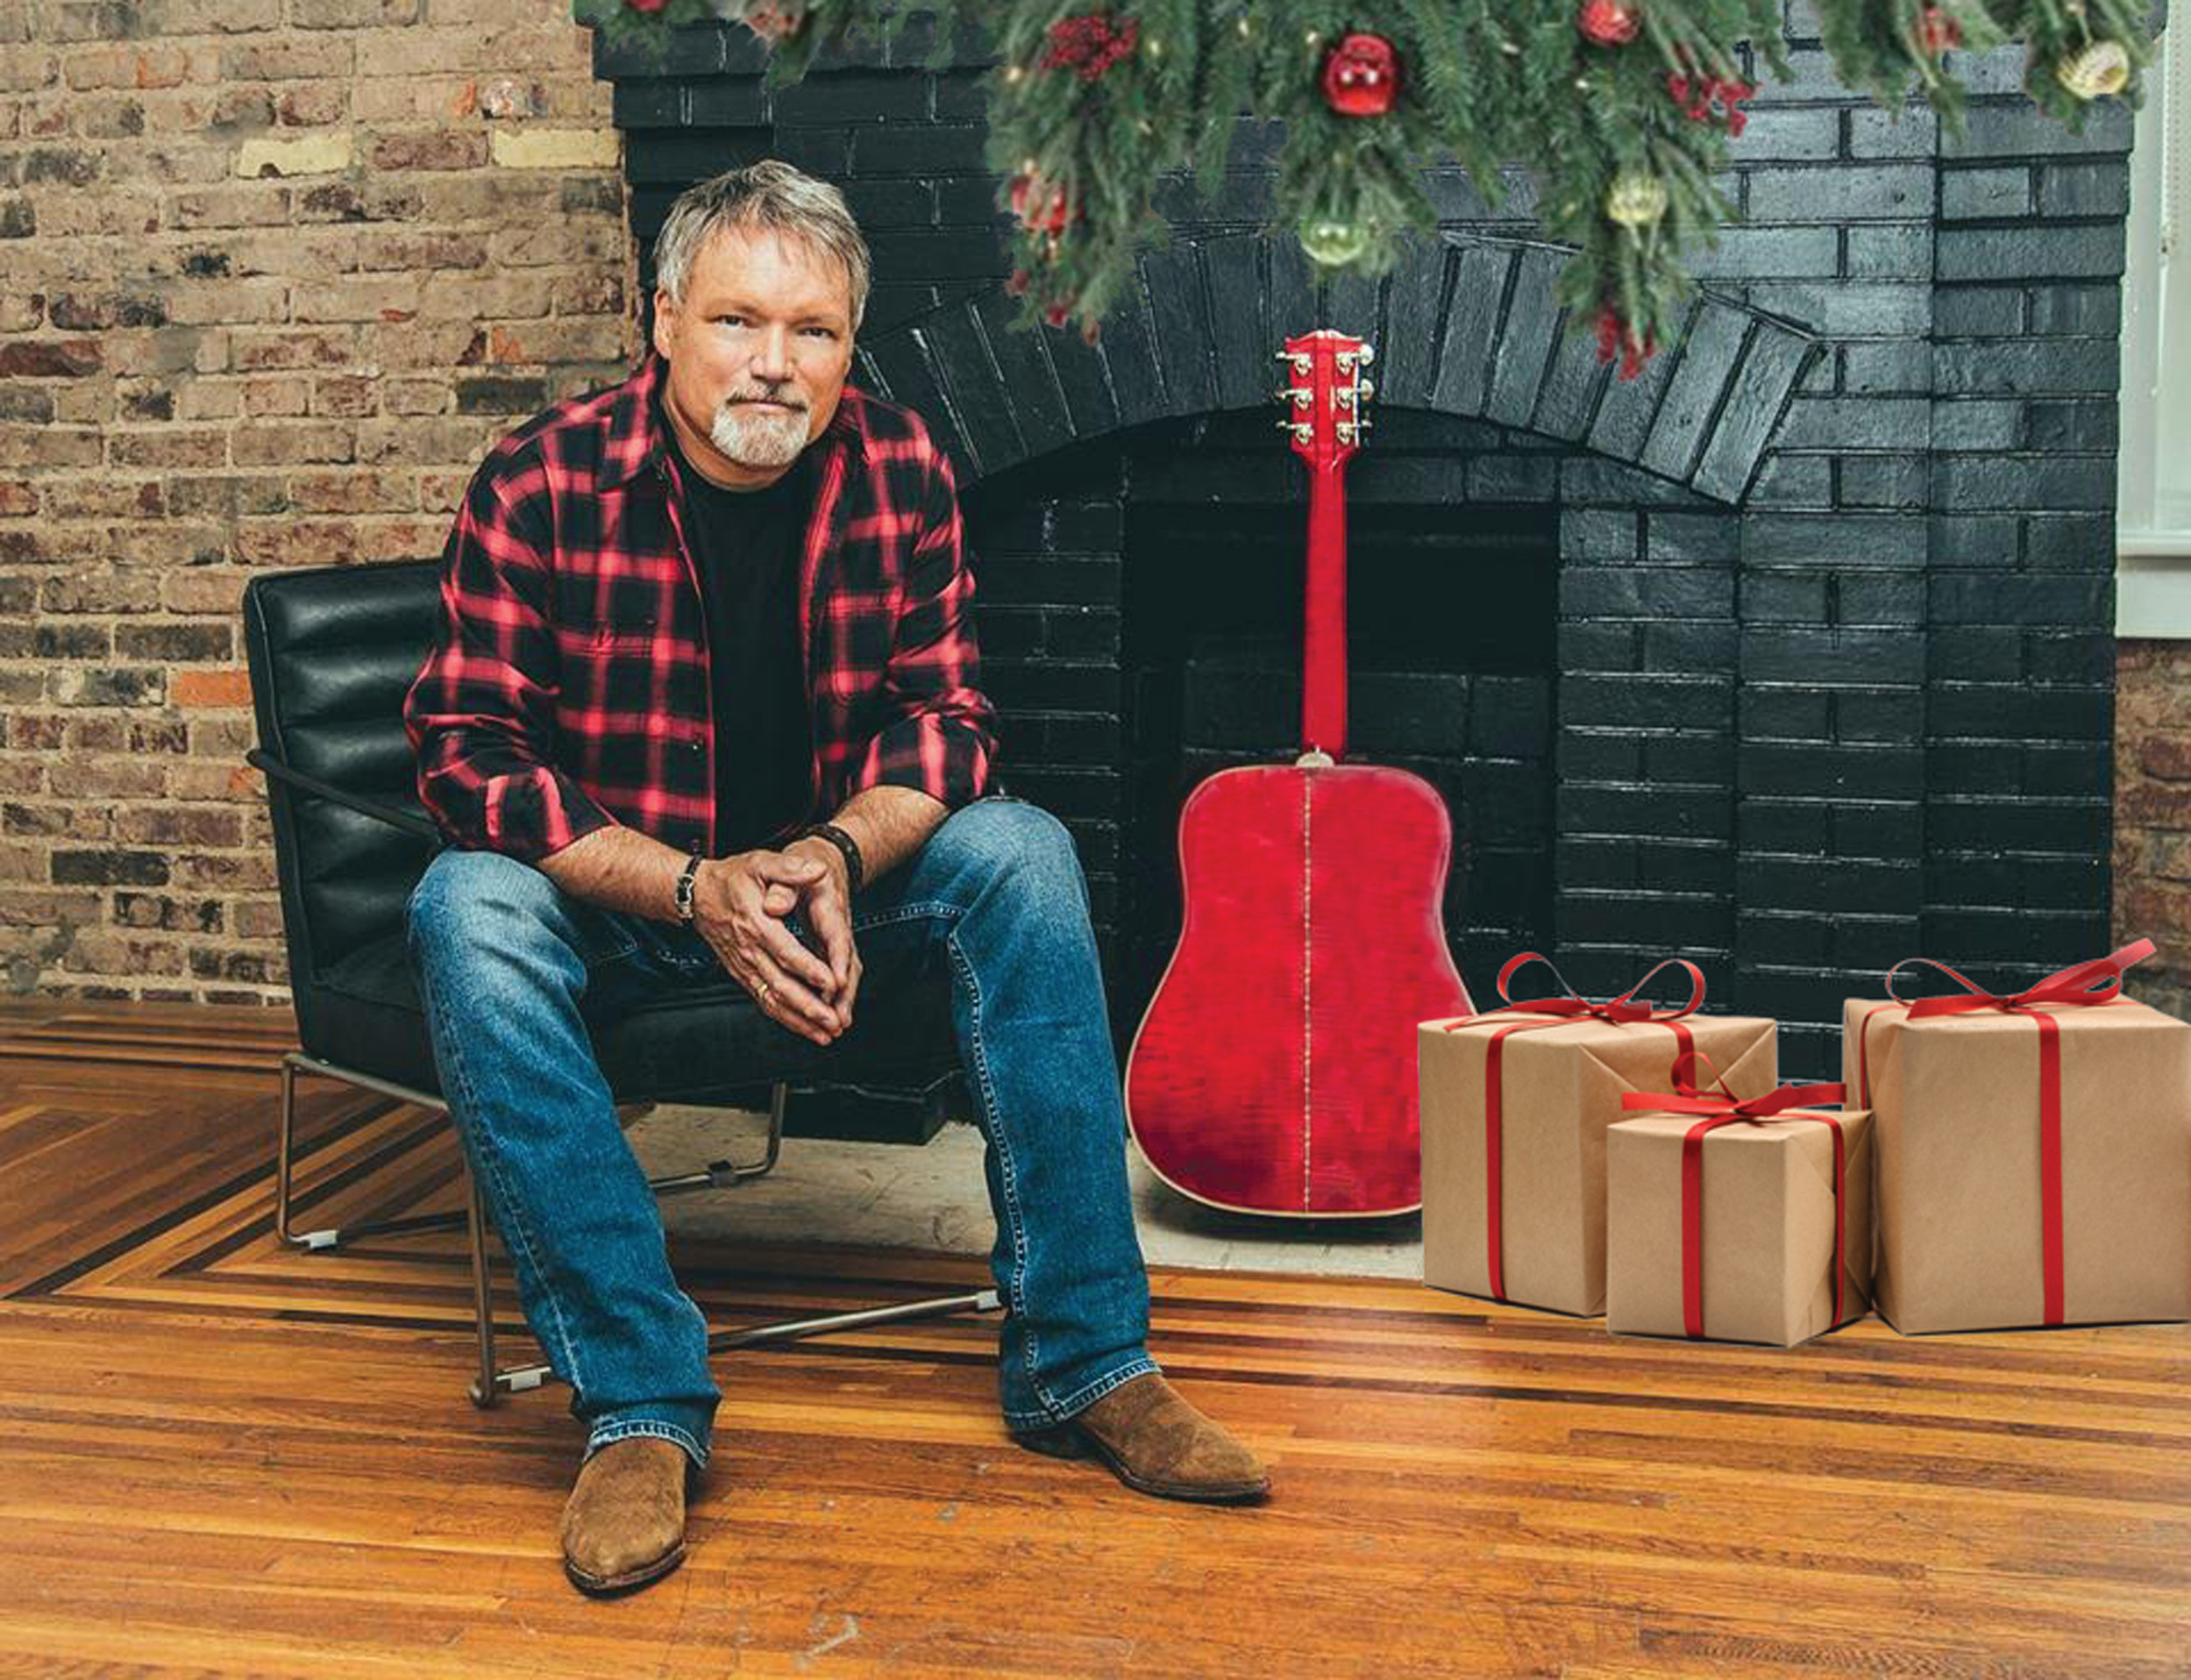 "Grammy Award-winning singer-songwriter John Berry makes his only stop in South Carolina on his 21st annual Christmas tour at 7:30 p.m. Saturday at the Sumter Opera House. He'll perform two sets, the first comprising his many hit country songs and the second traditional Christmas music, including his popular performance of ""O Holy Night,"" and songs from his CD titled ""Christmas."""